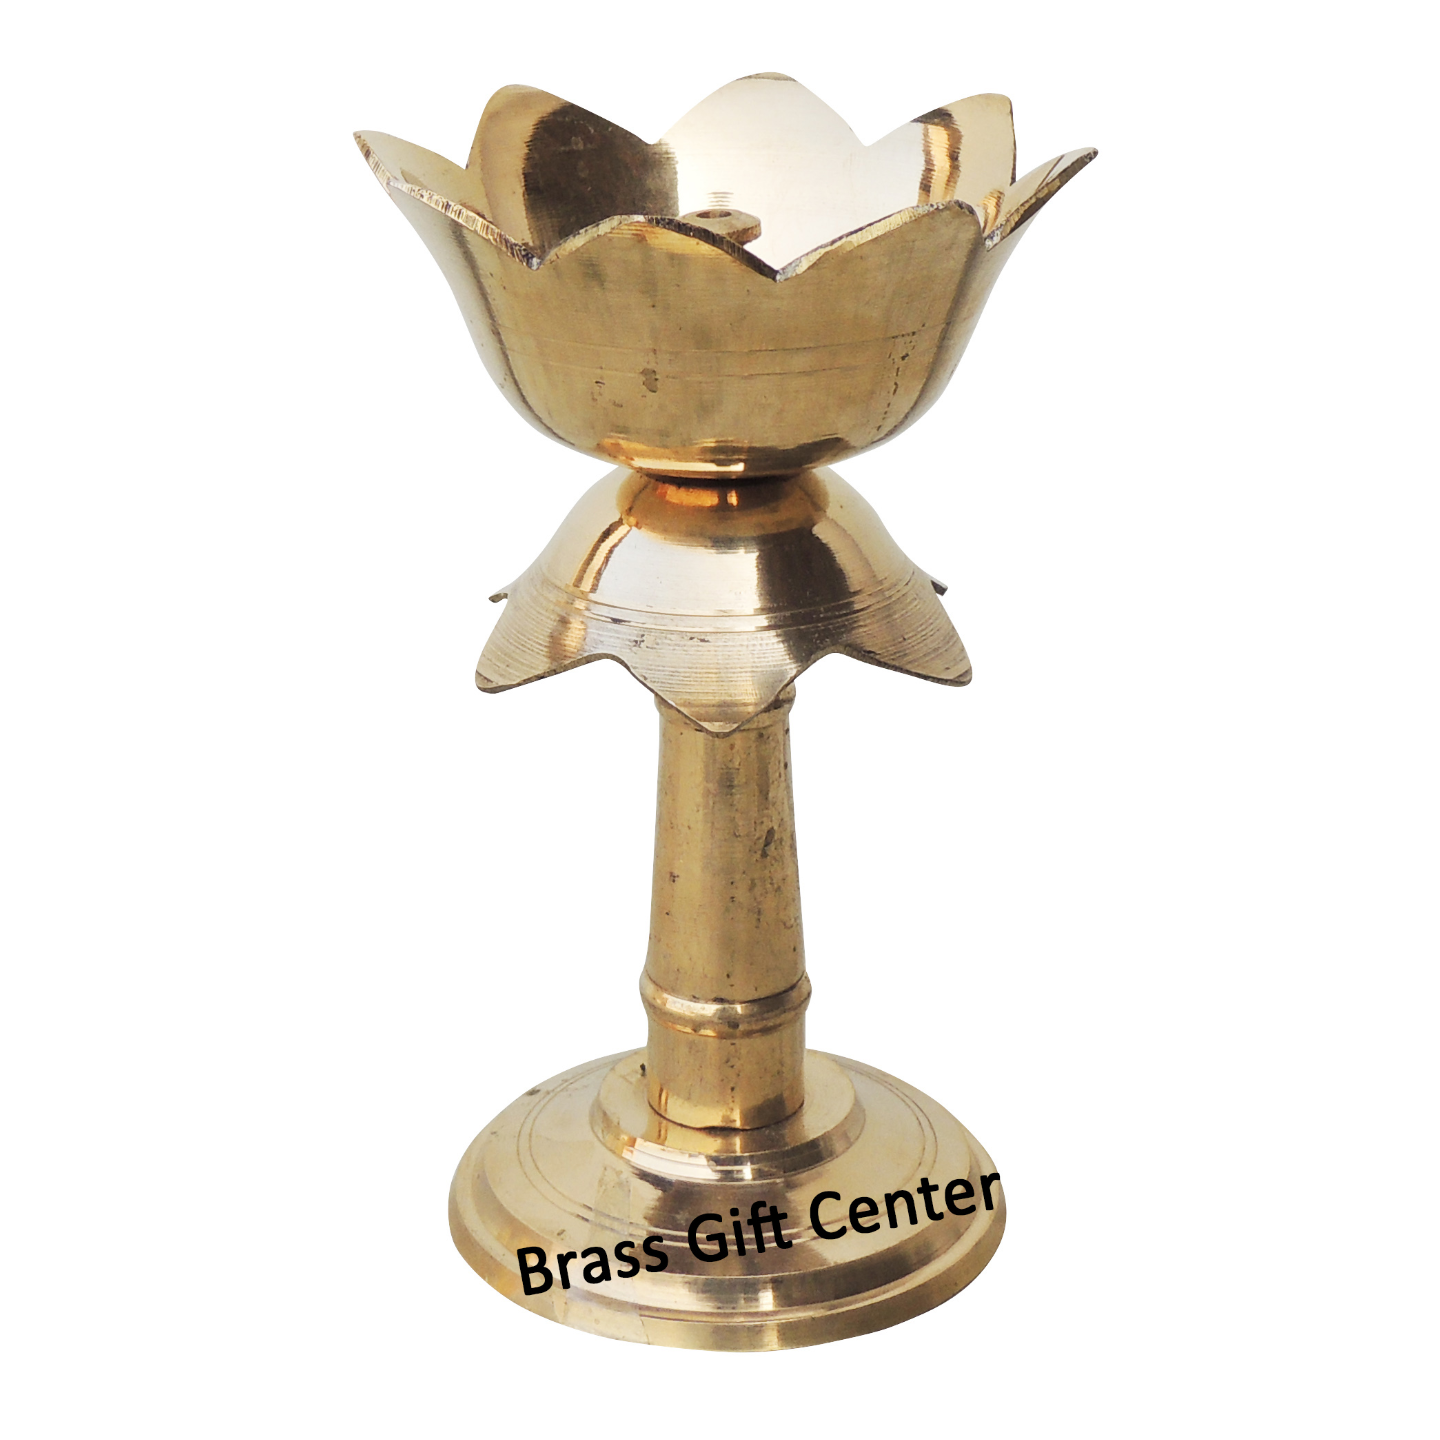 Brass Lotus Shape Deepak With Stand In Brass Finish - 6 Inch F634 F